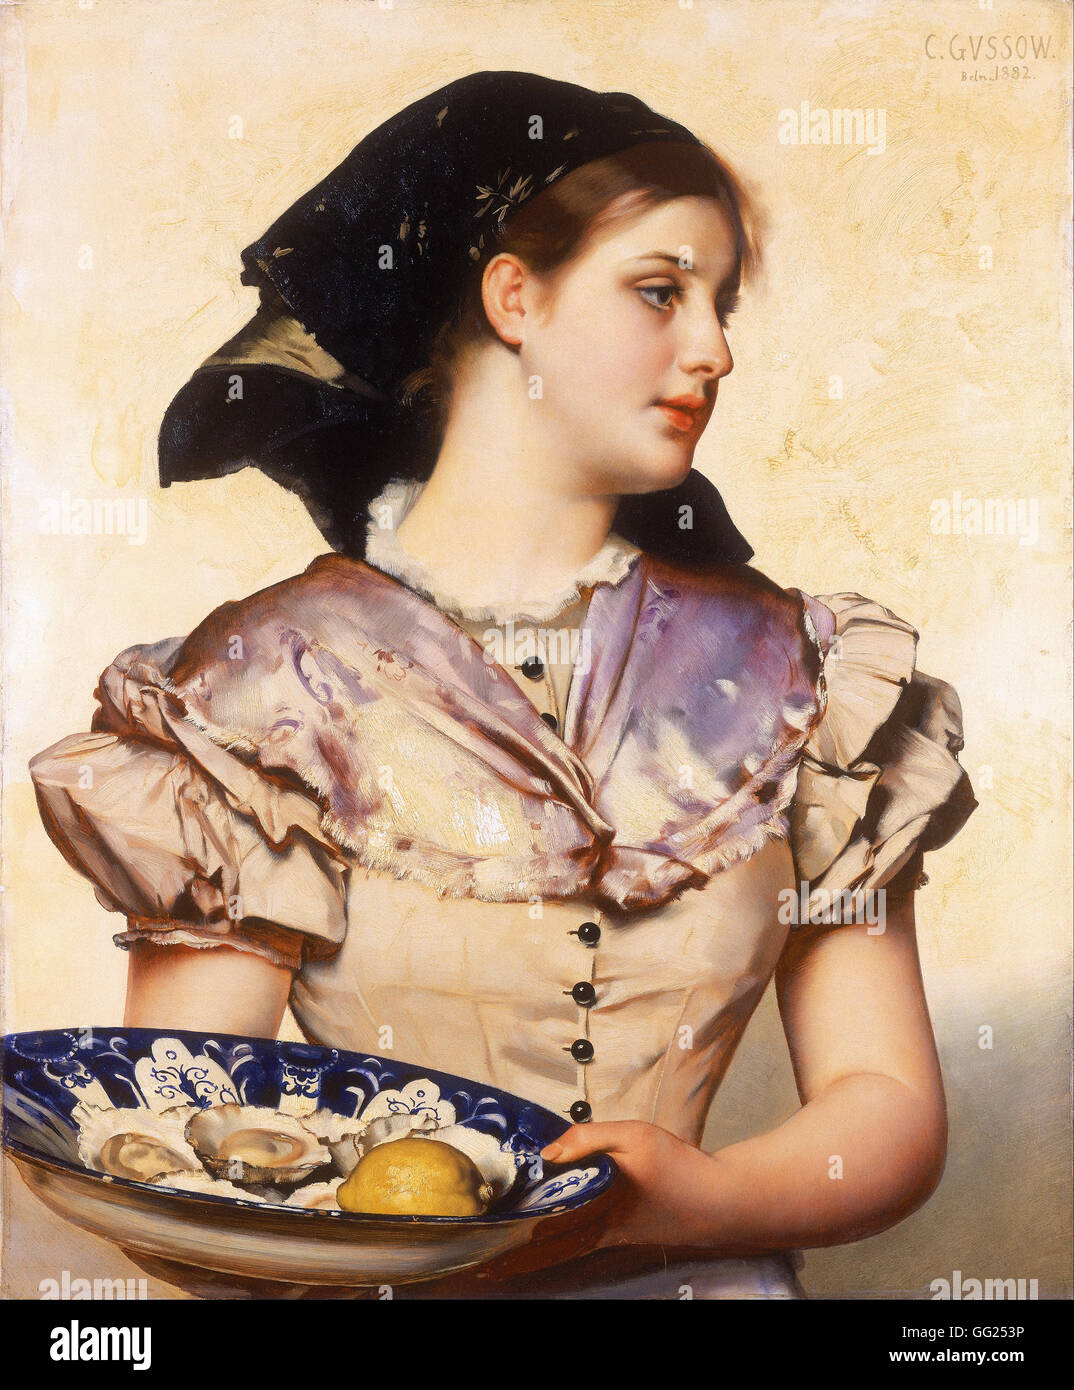 Karl Gussow - The Oyster Girl - Stock Image